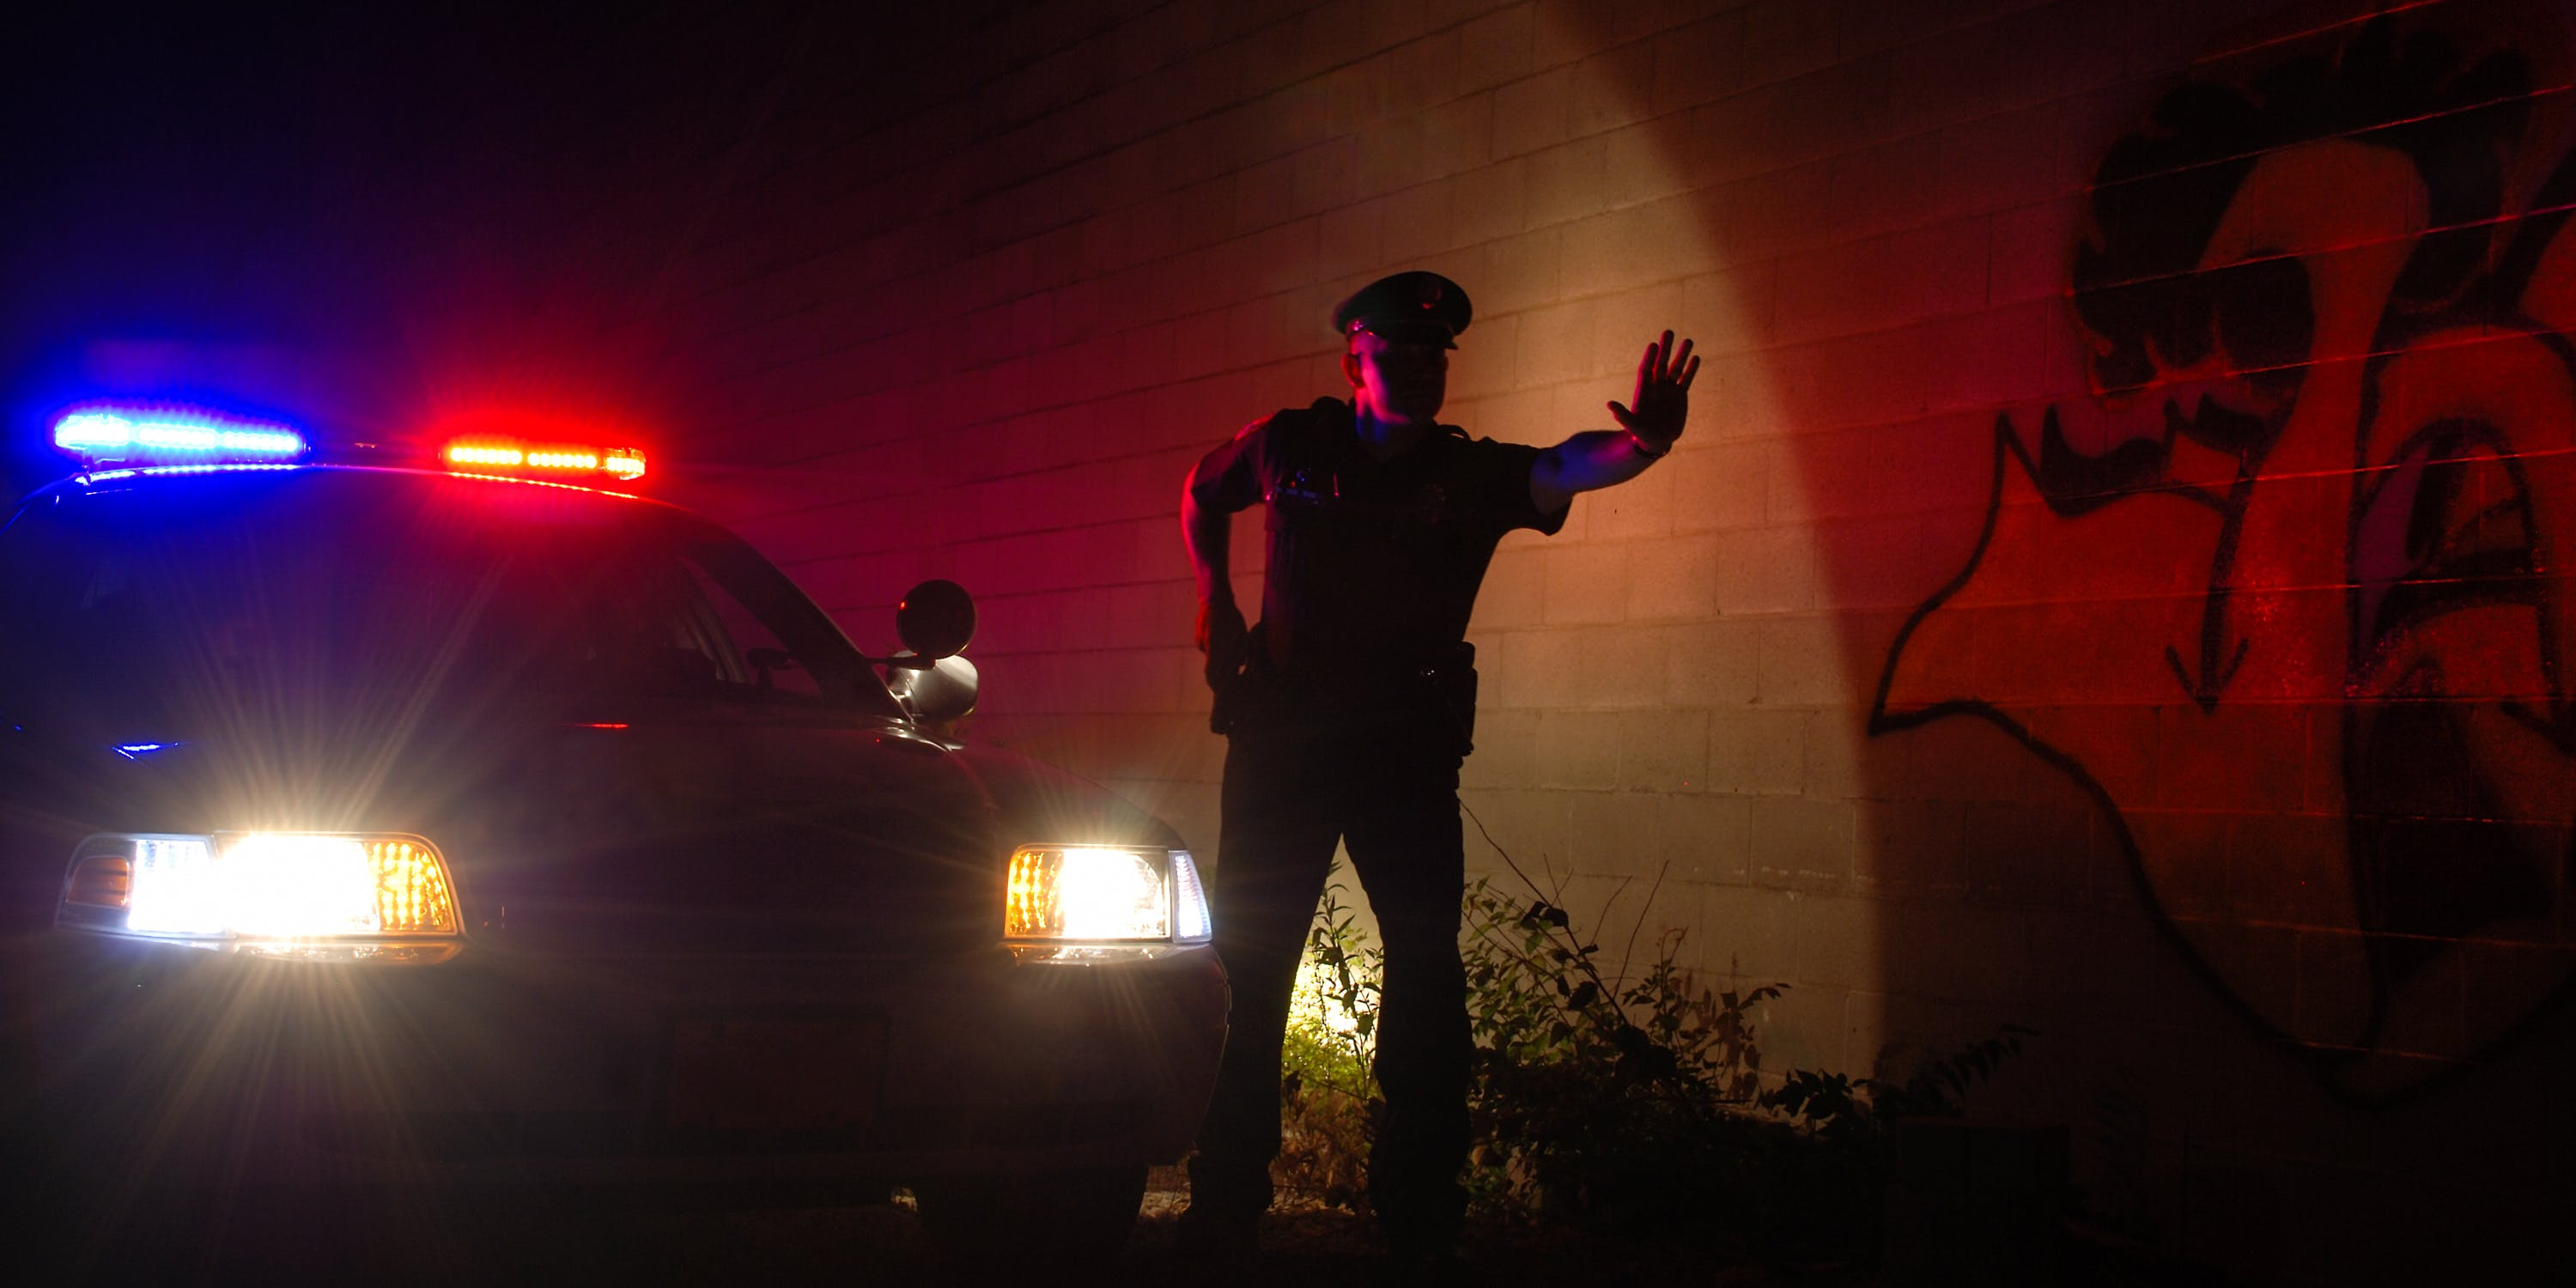 Traffic stop turns into a police shooting after officers smell marijuana